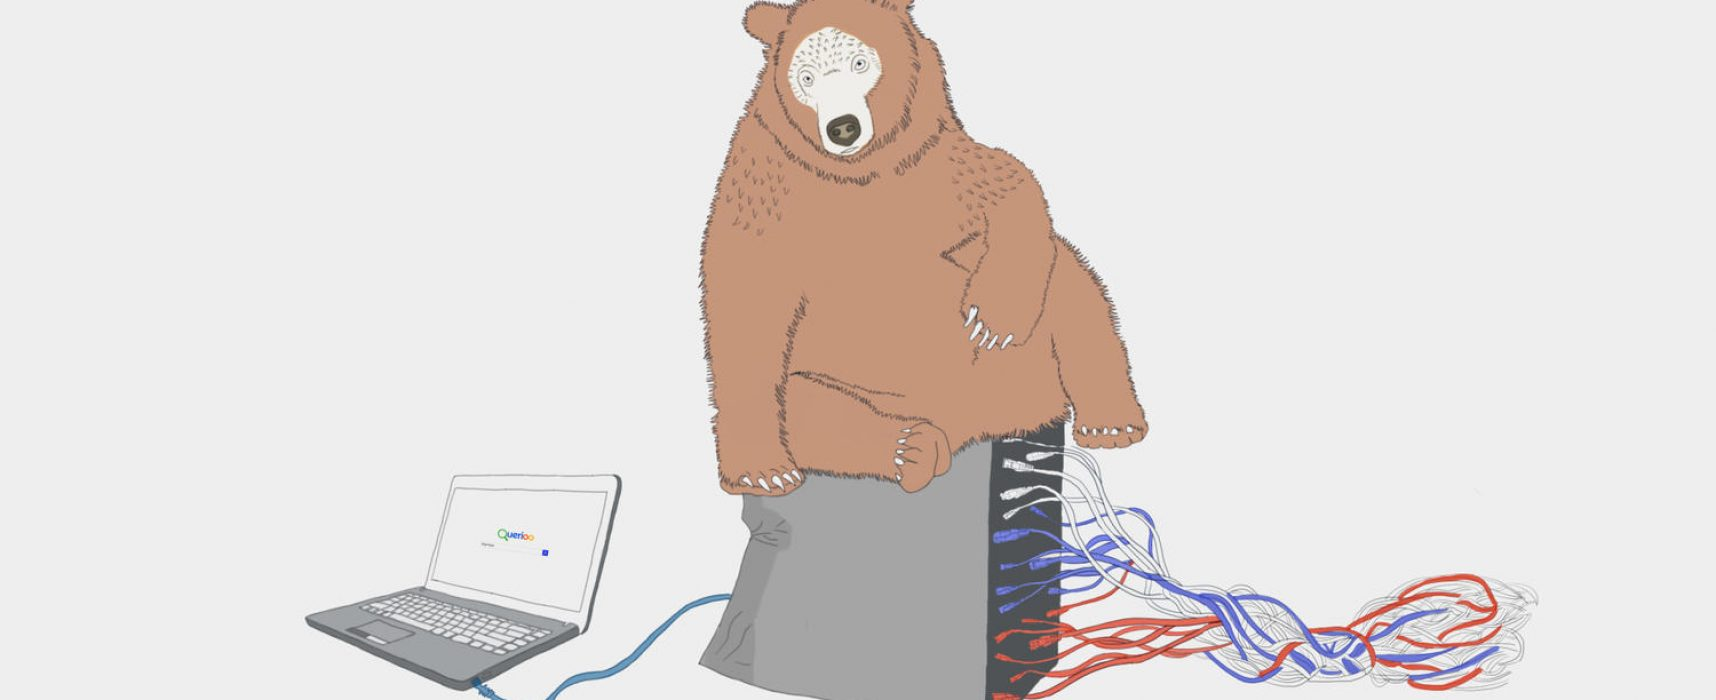 The Kremlin's Internet Master Bears Down